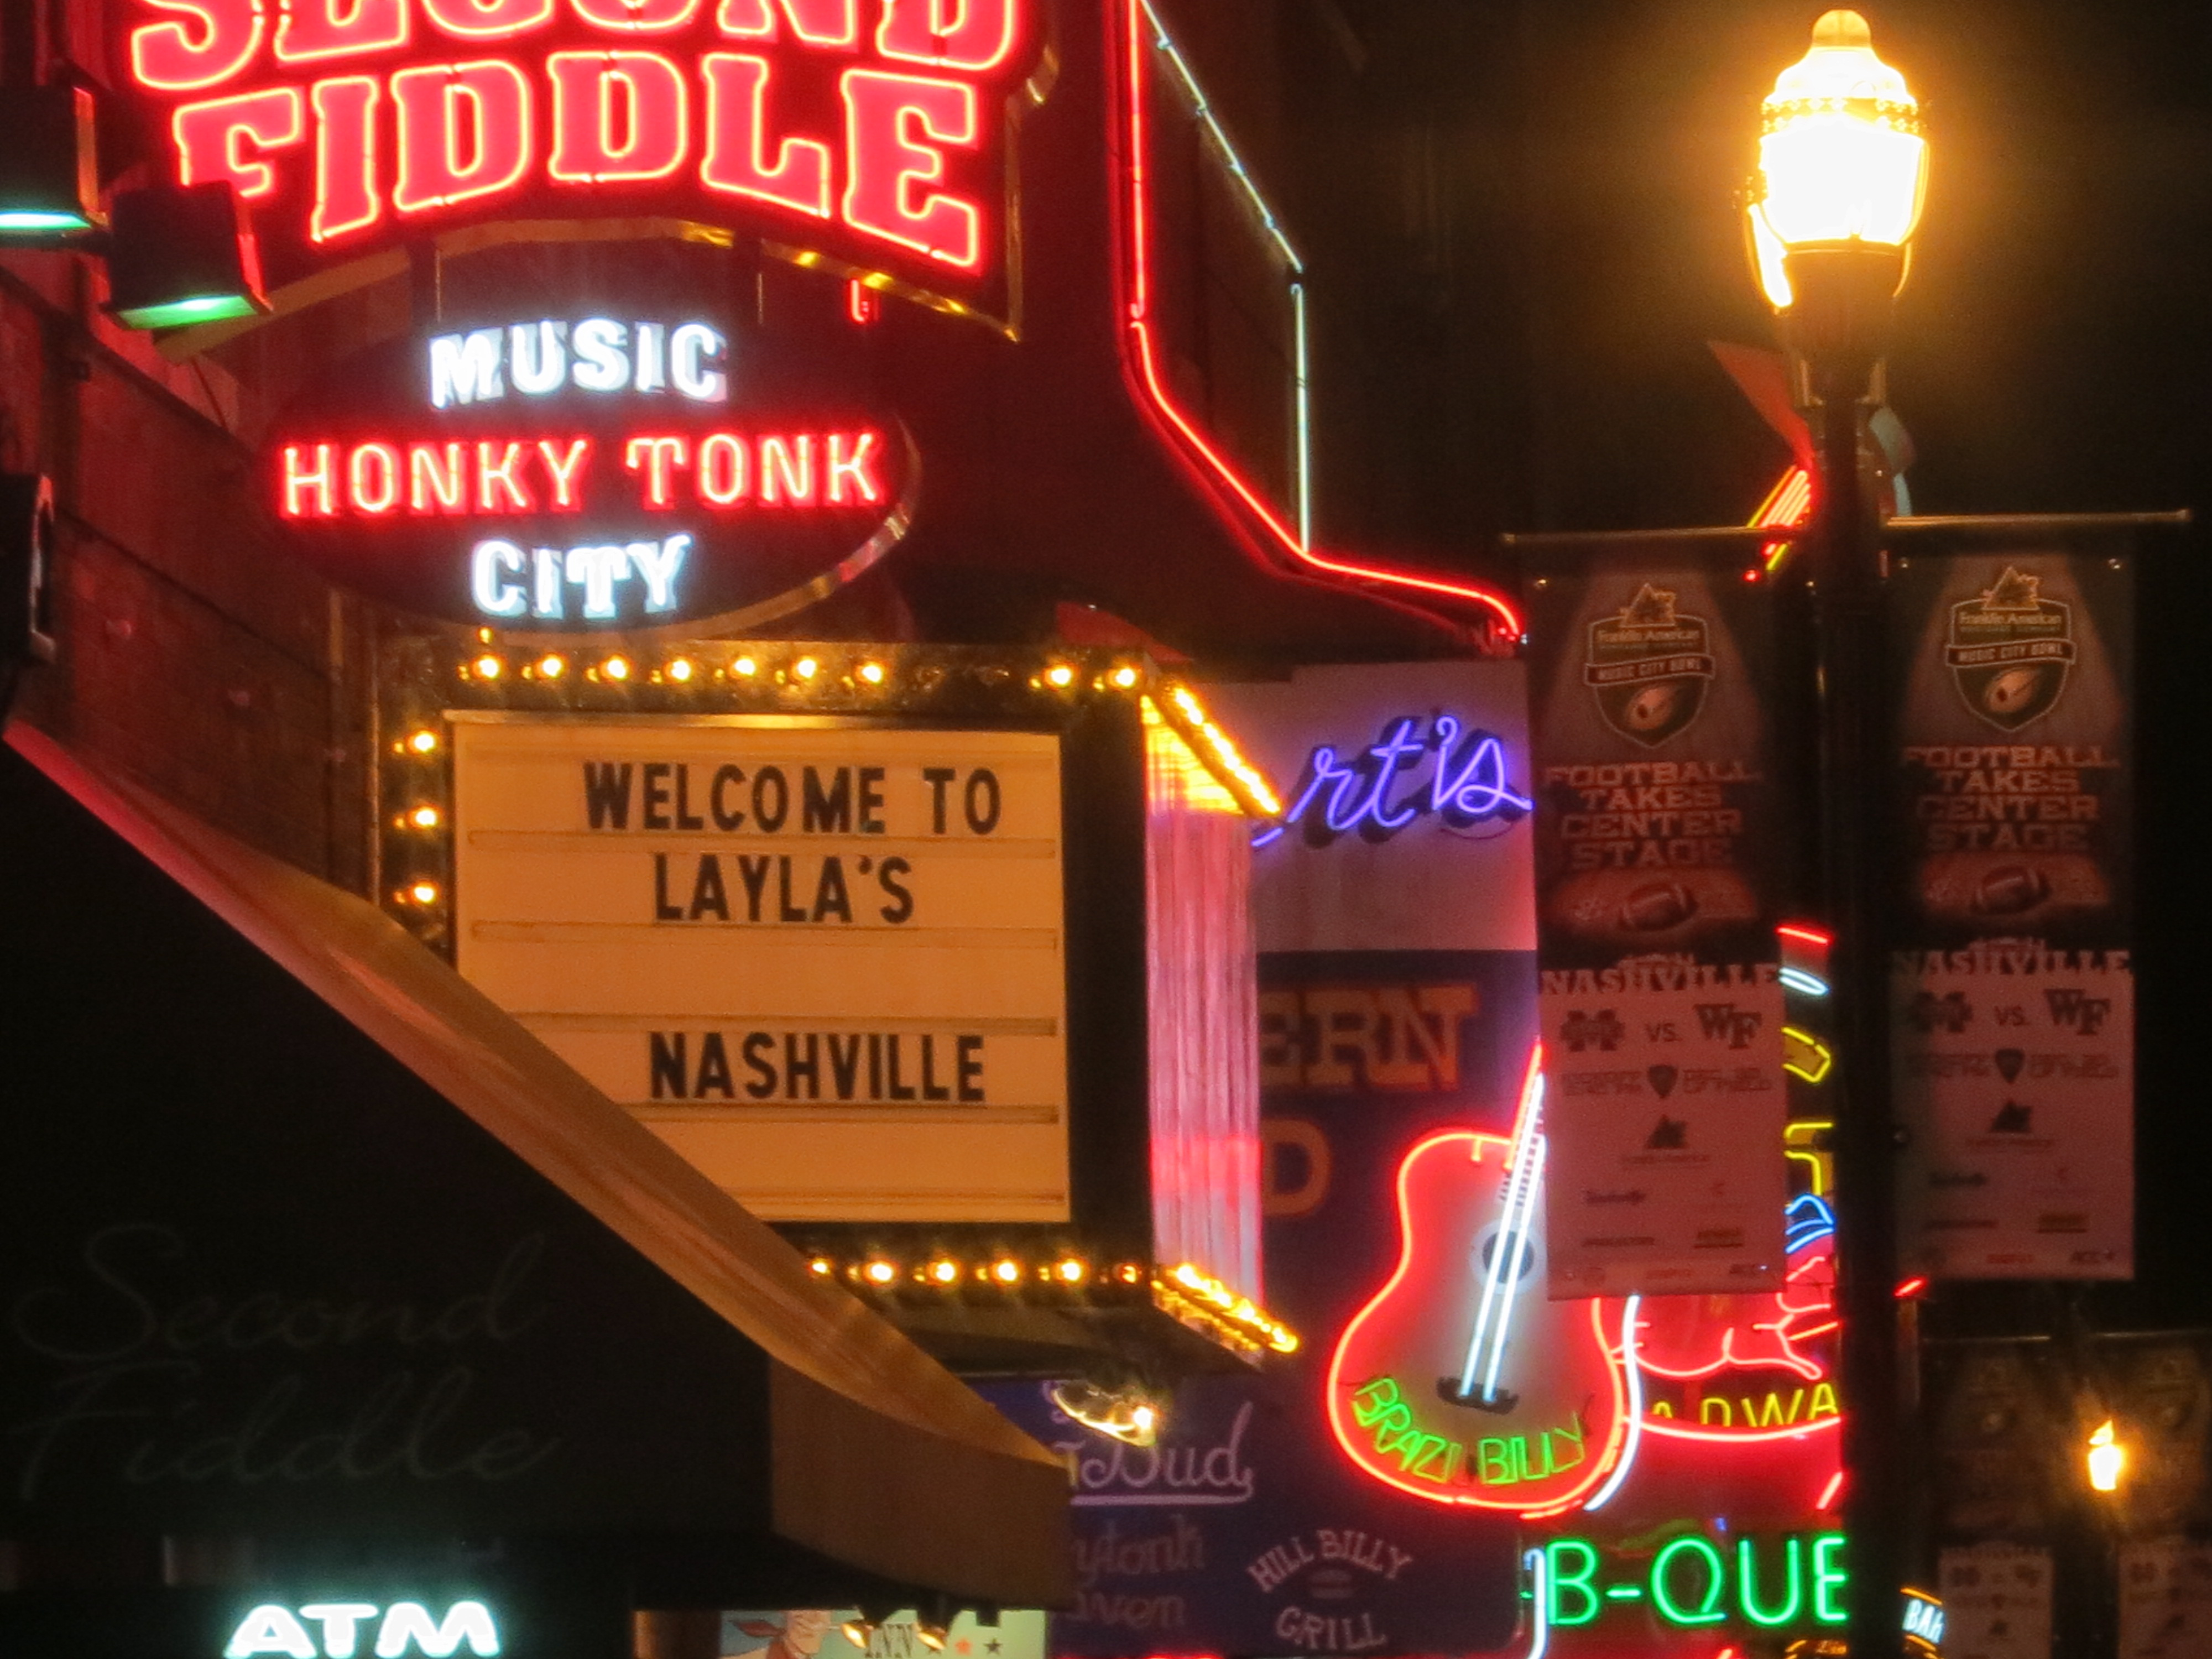 Nashville Live Marking Our Territory